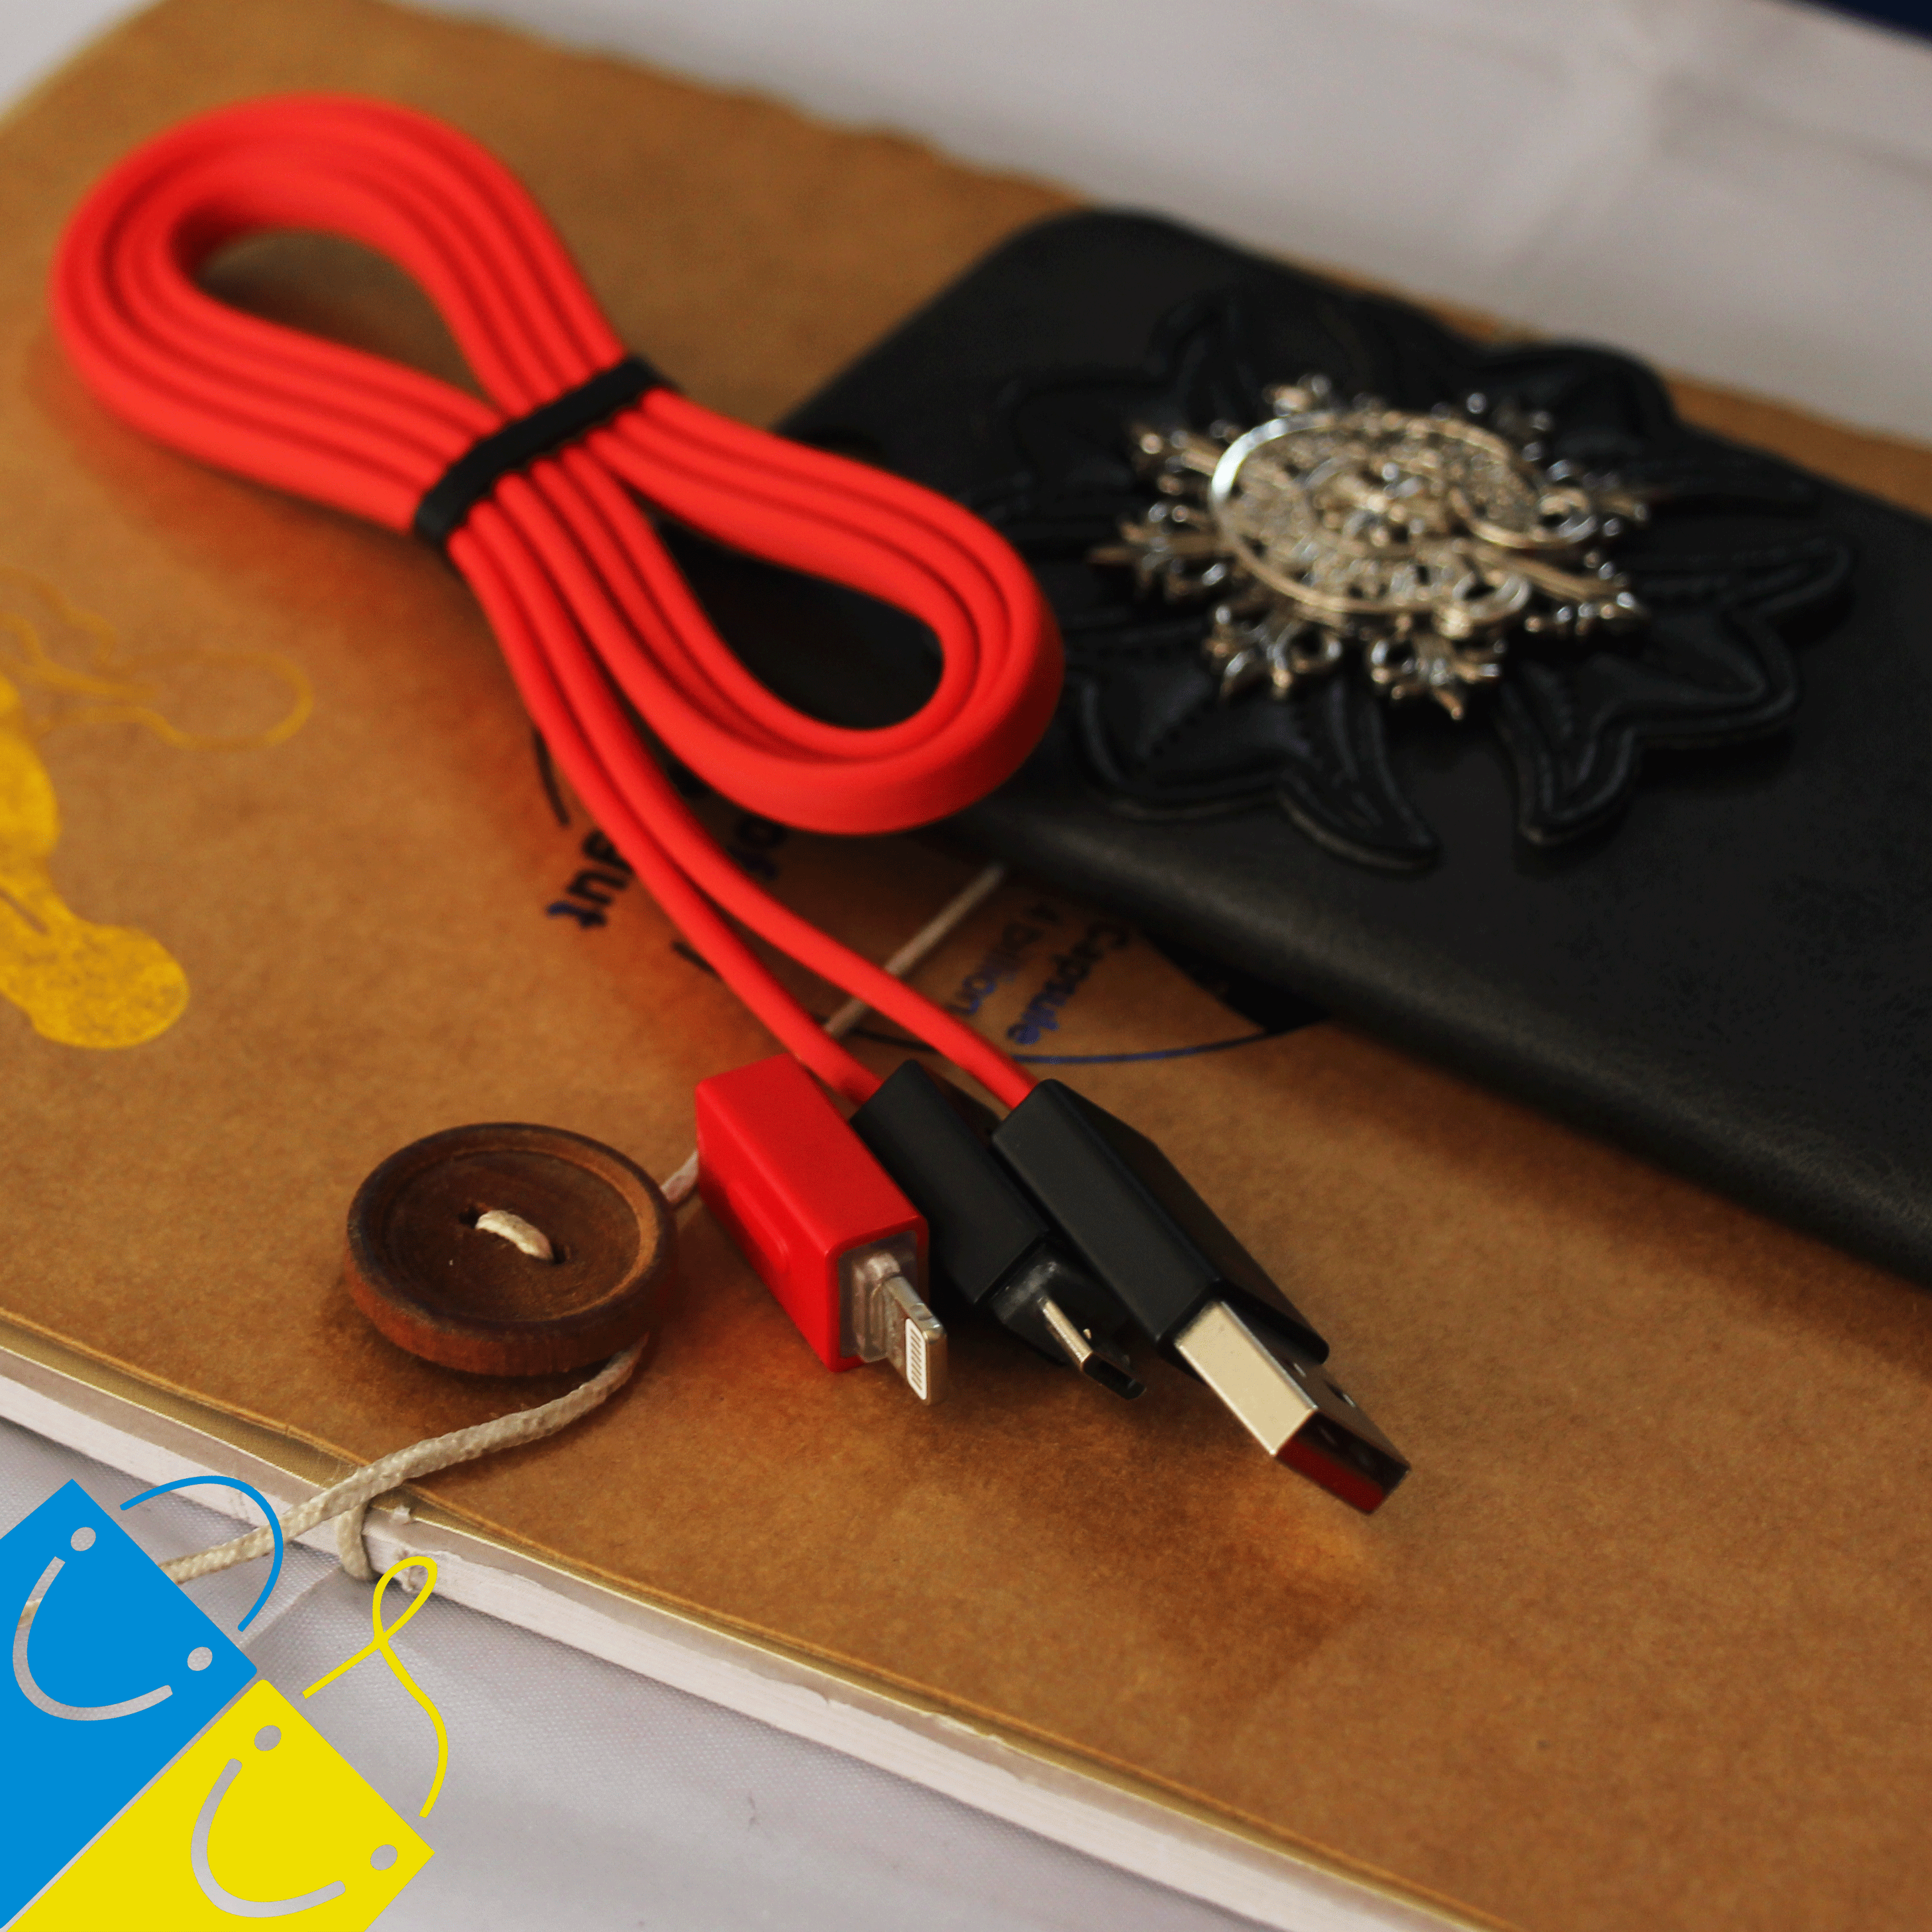 REMAX Shadow Magnet Adsorption 2 in 1 Data Cable RC-026t 1 Meter - Micro USB + iPhone Lightning